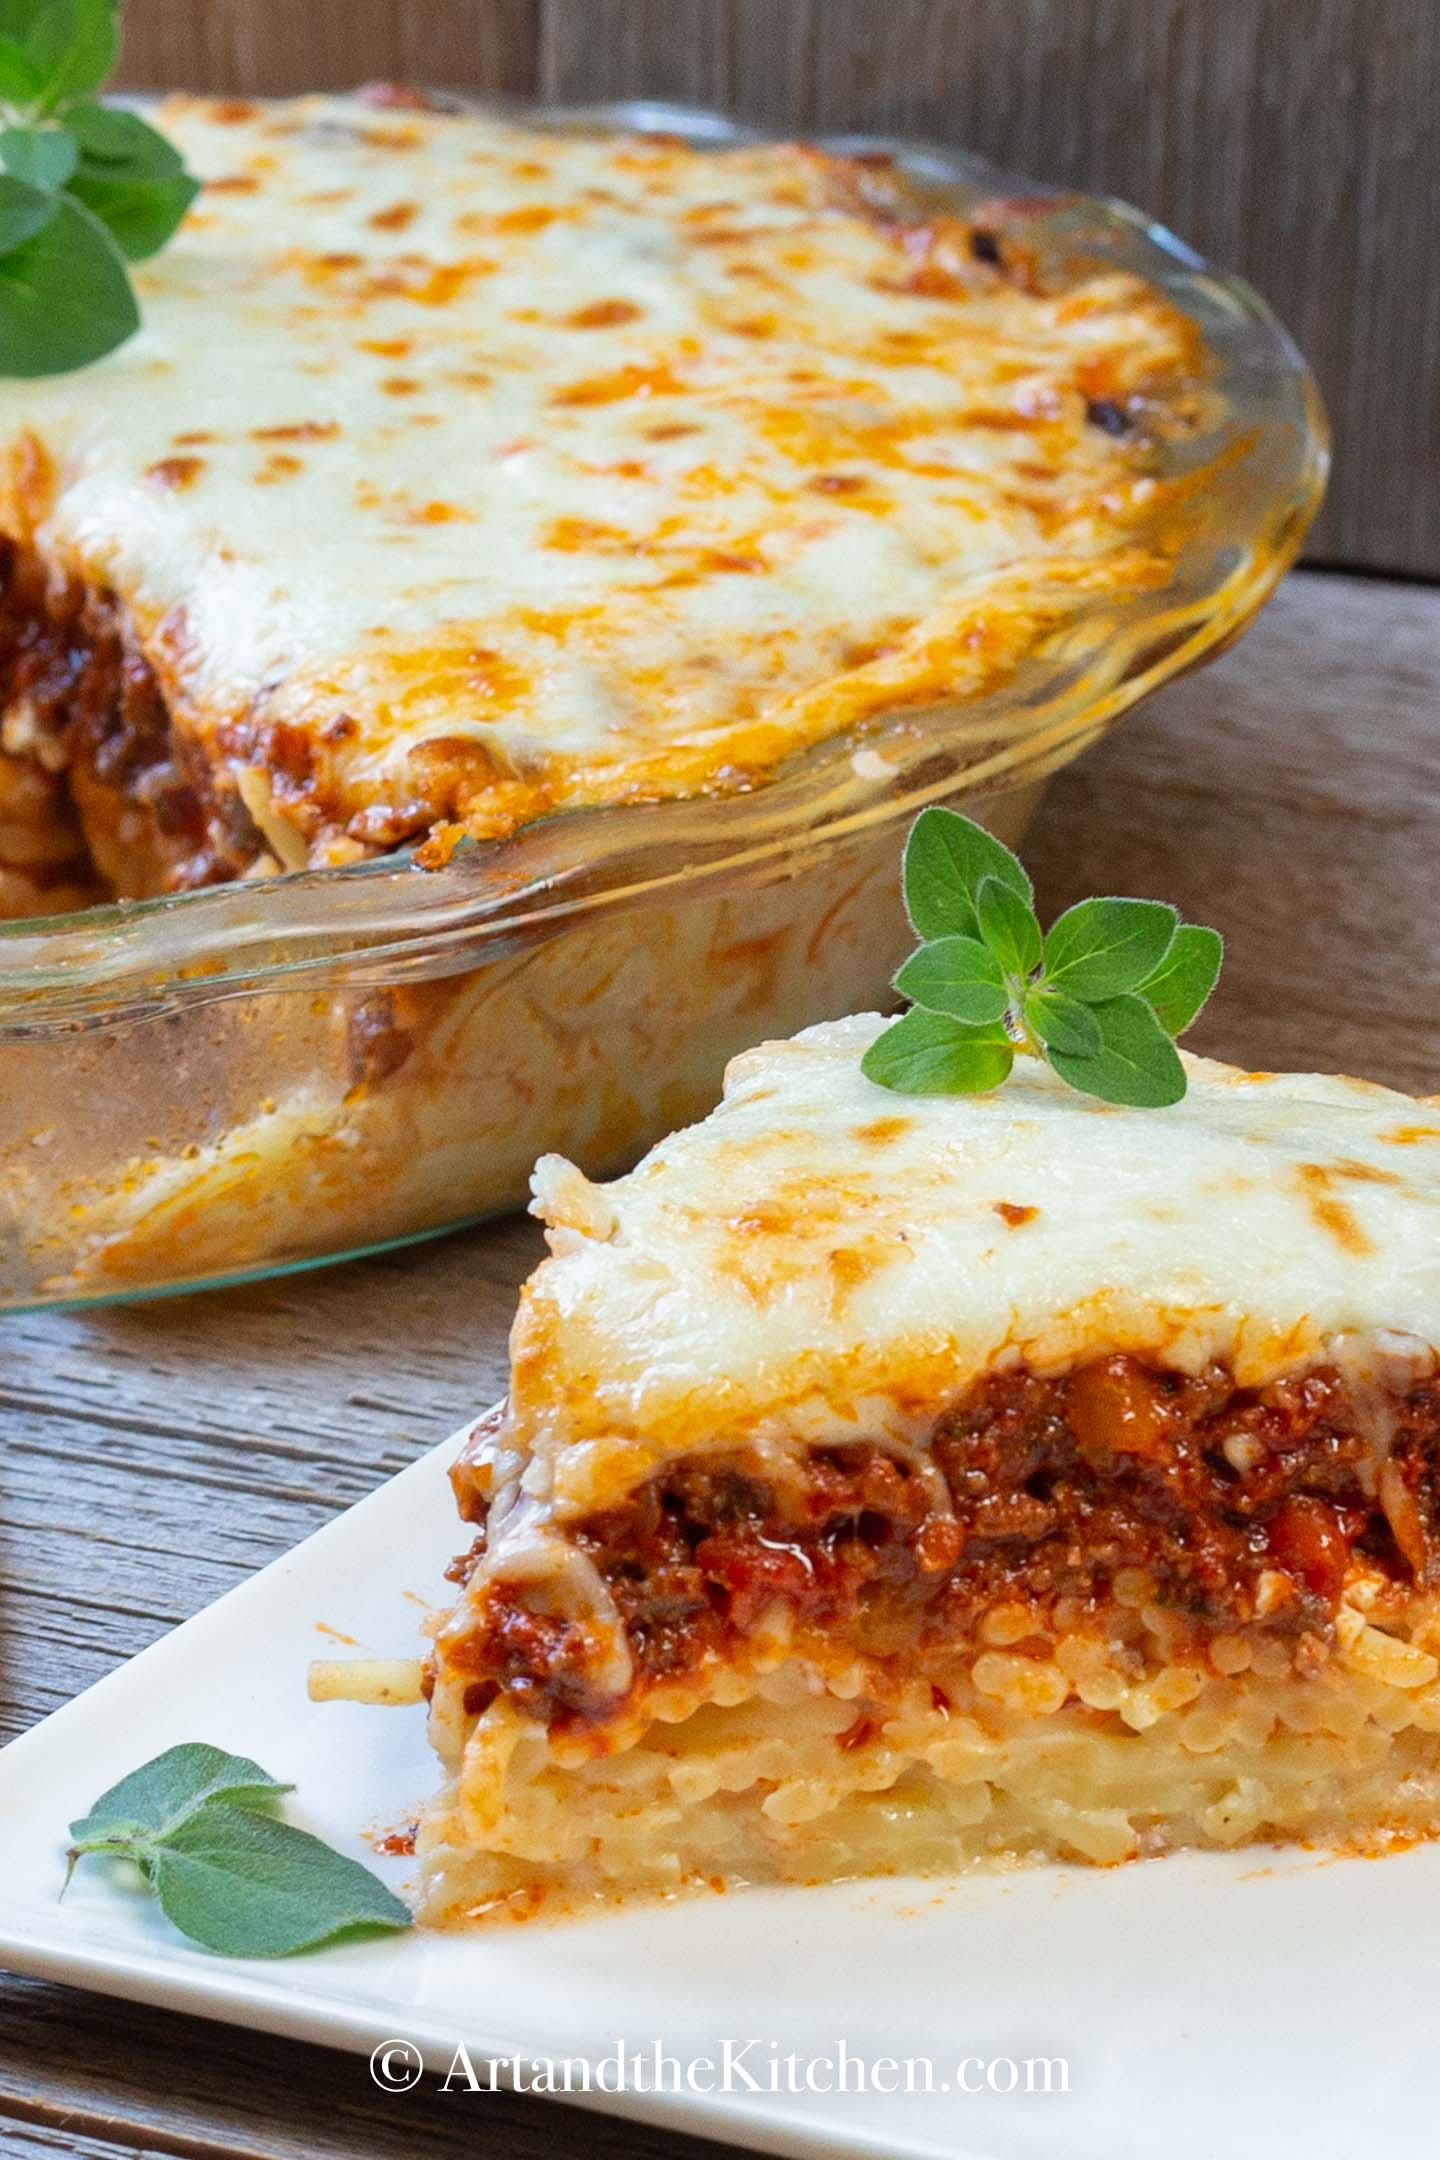 Dinner pie made with layers of spaghetti, meat sauce, topped with melted cheese.